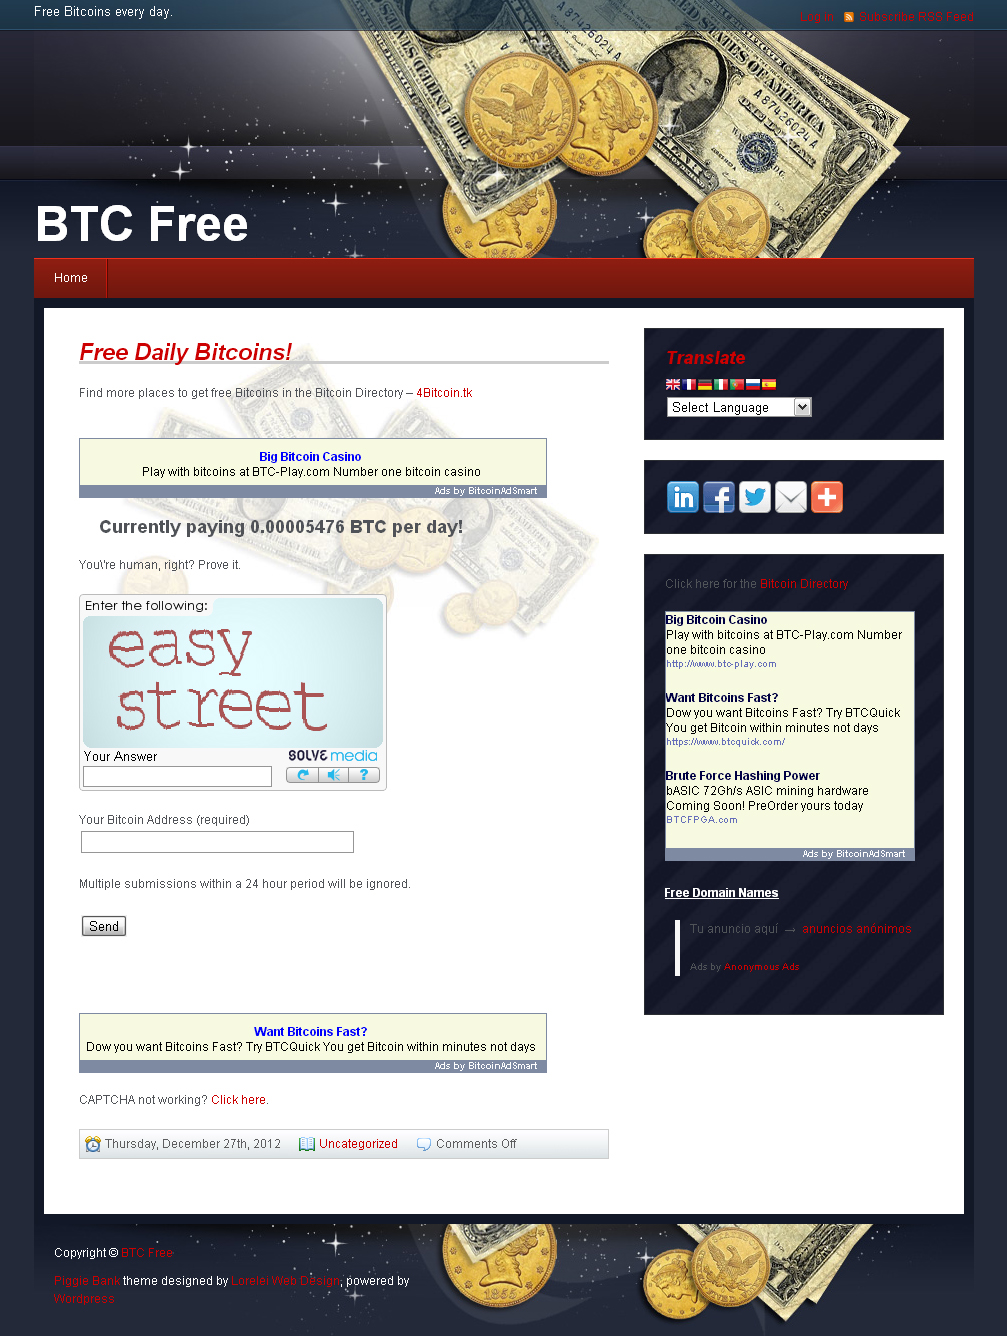 get one bitcoin free